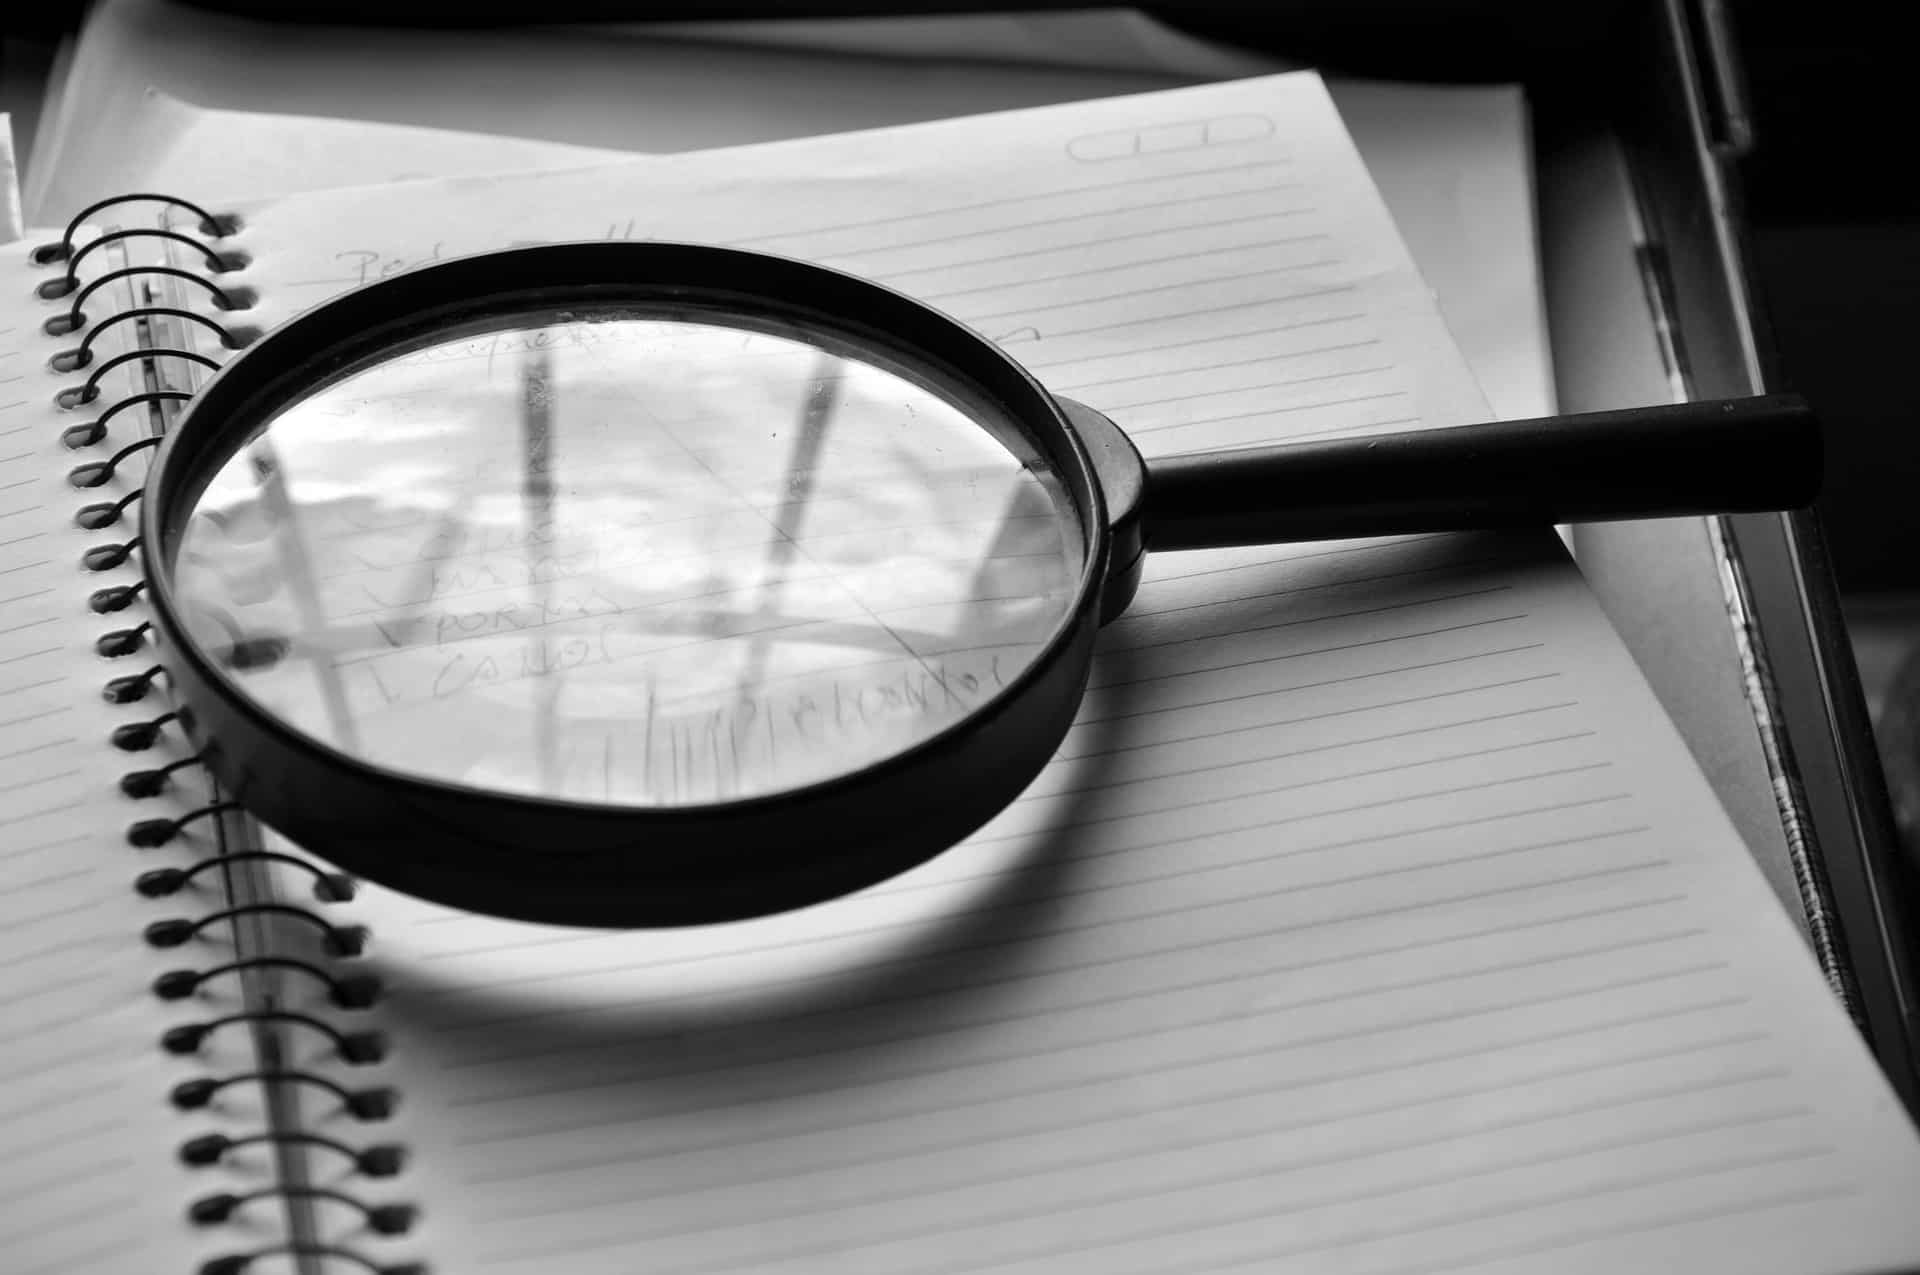 Magnifying glass on a notepad